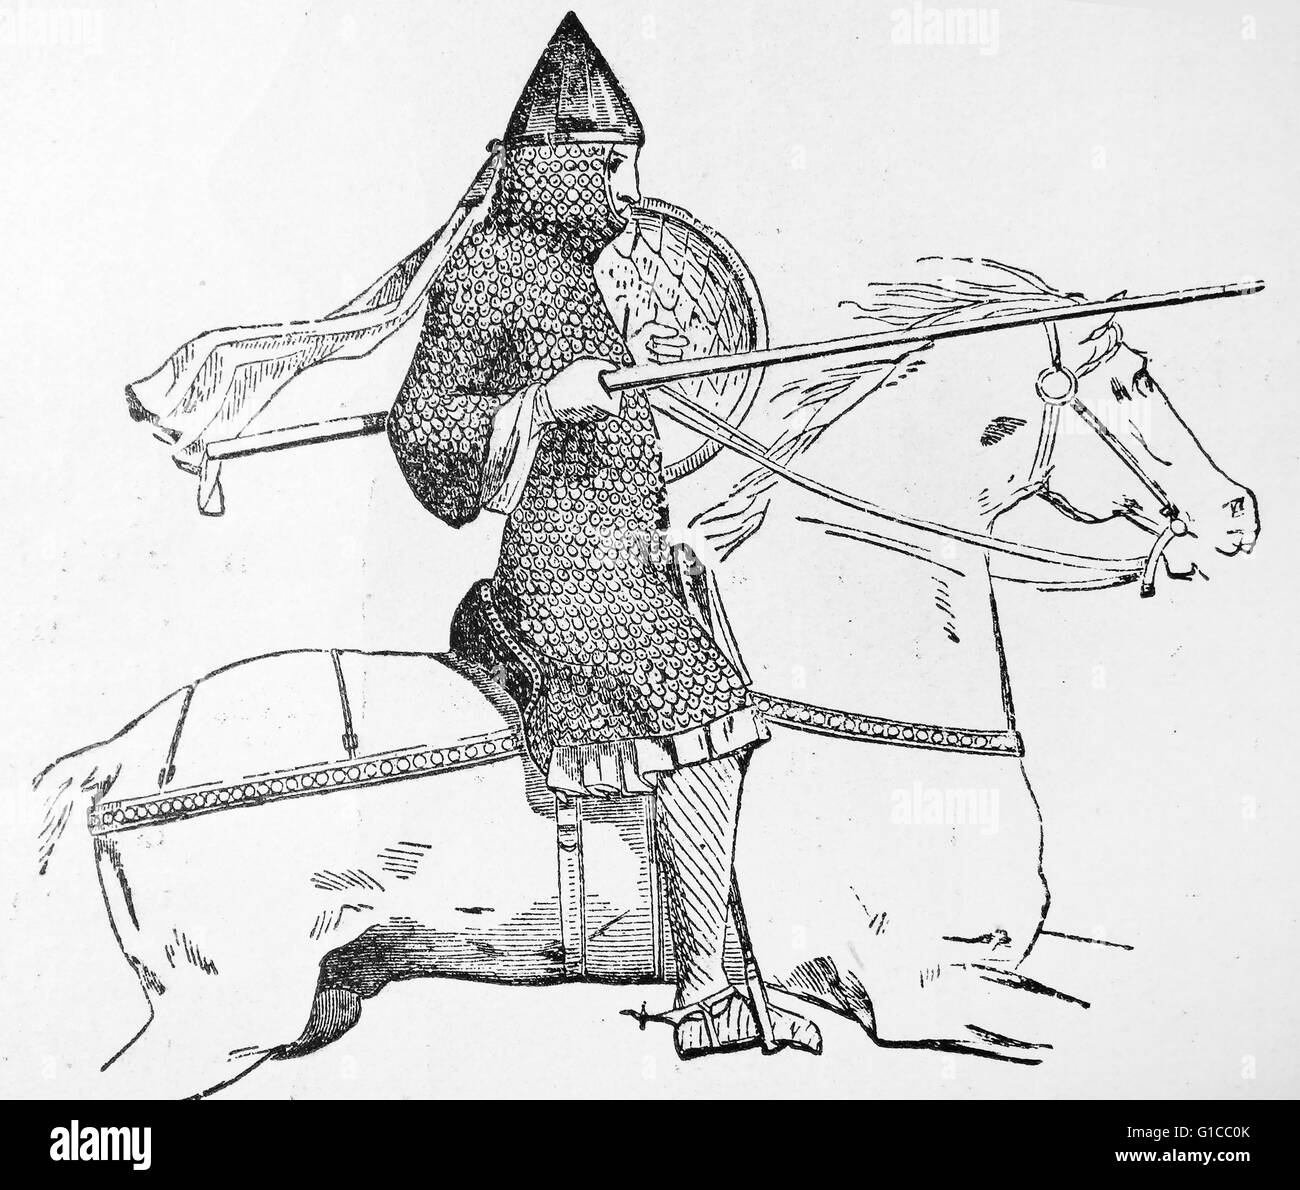 Engraving depicting a mounted knight of the 12th Century - Stock Image